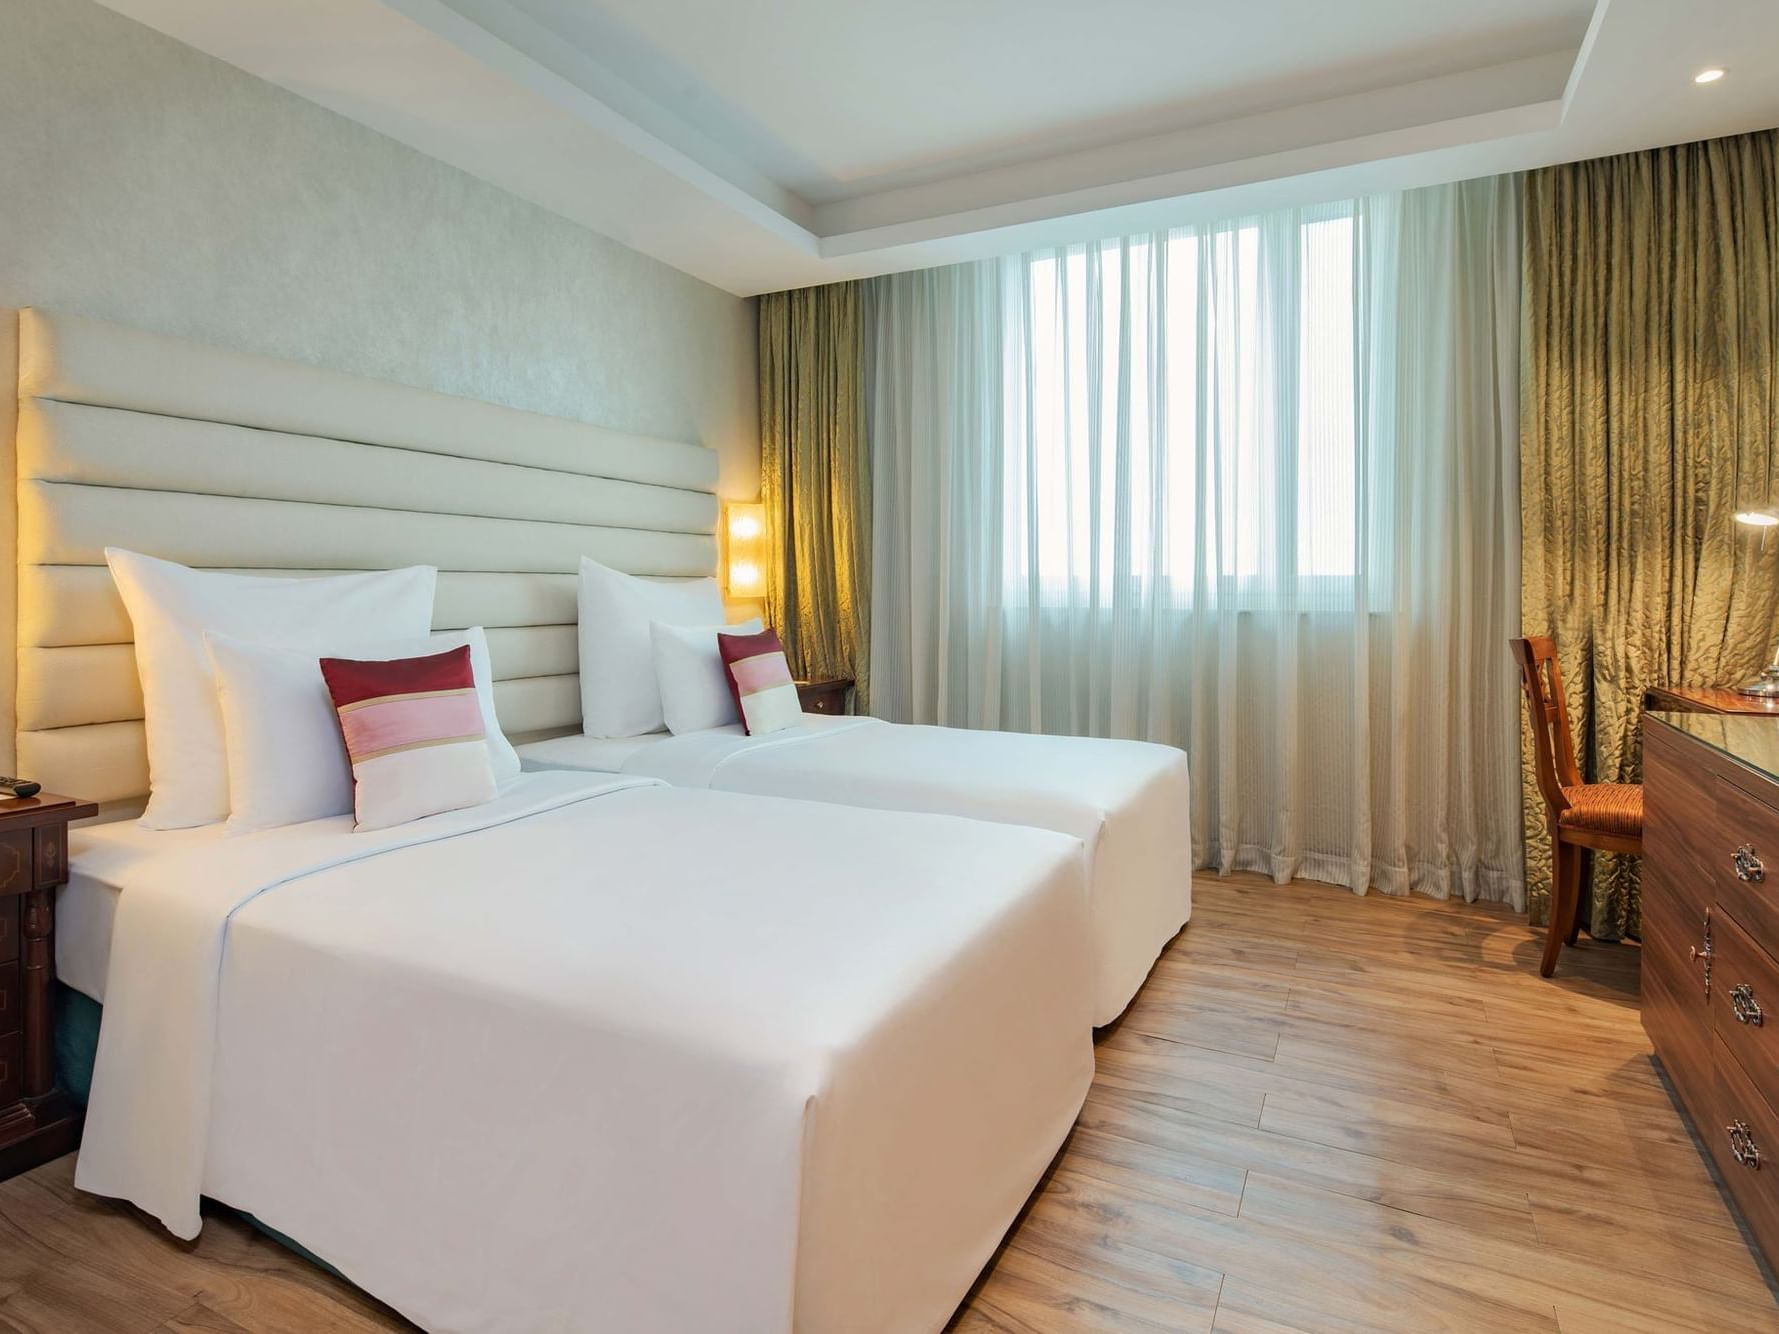 spacious hotel room with combined twin beds and television in front